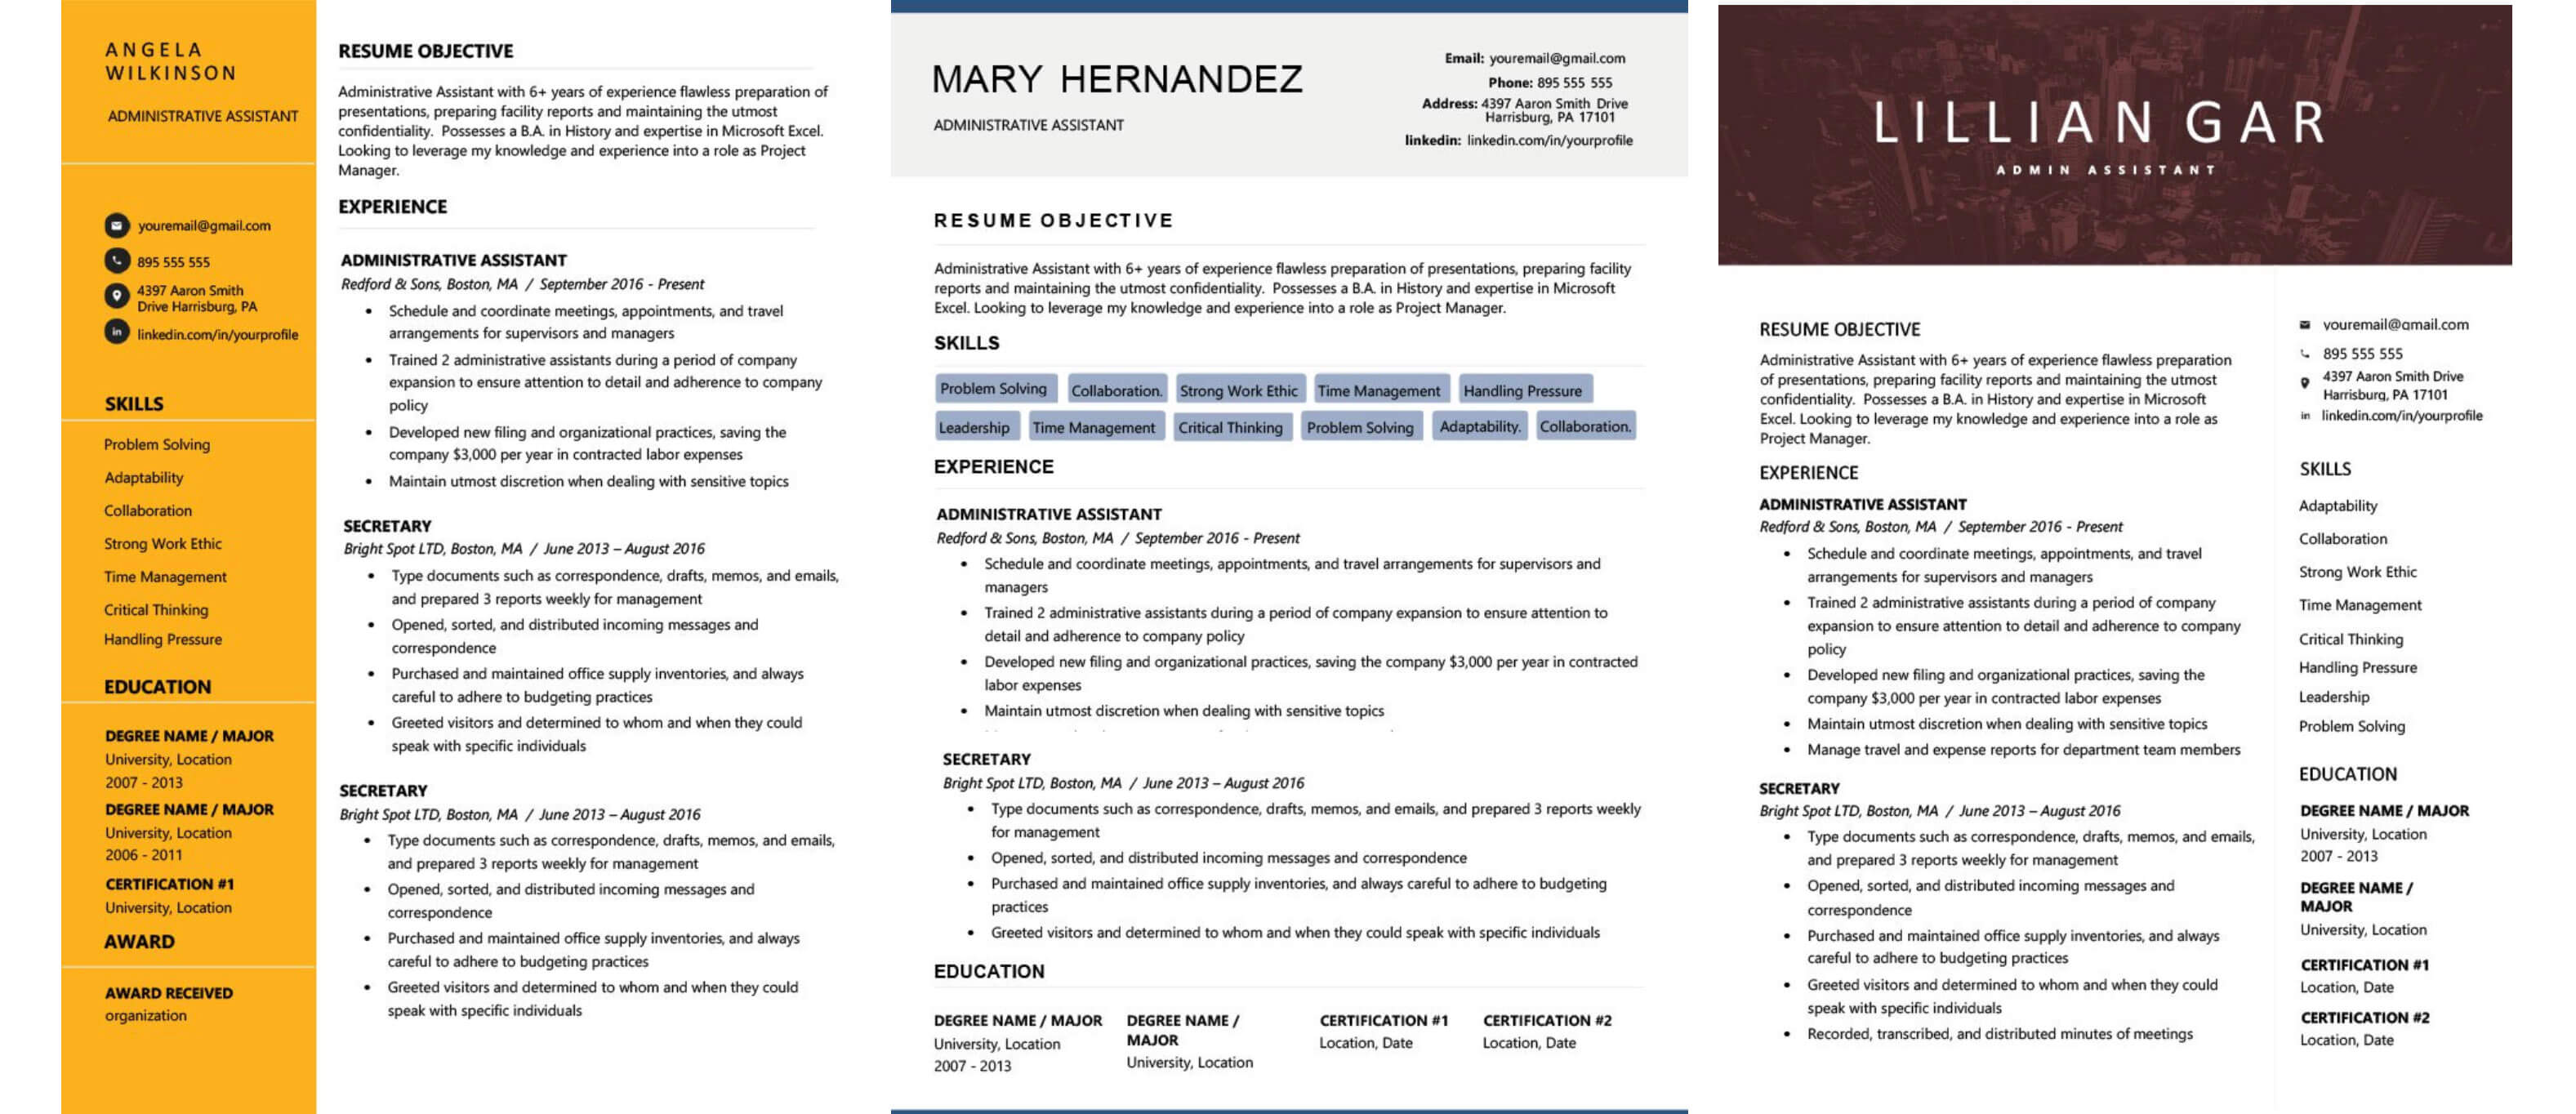 creative-resume-templates-1